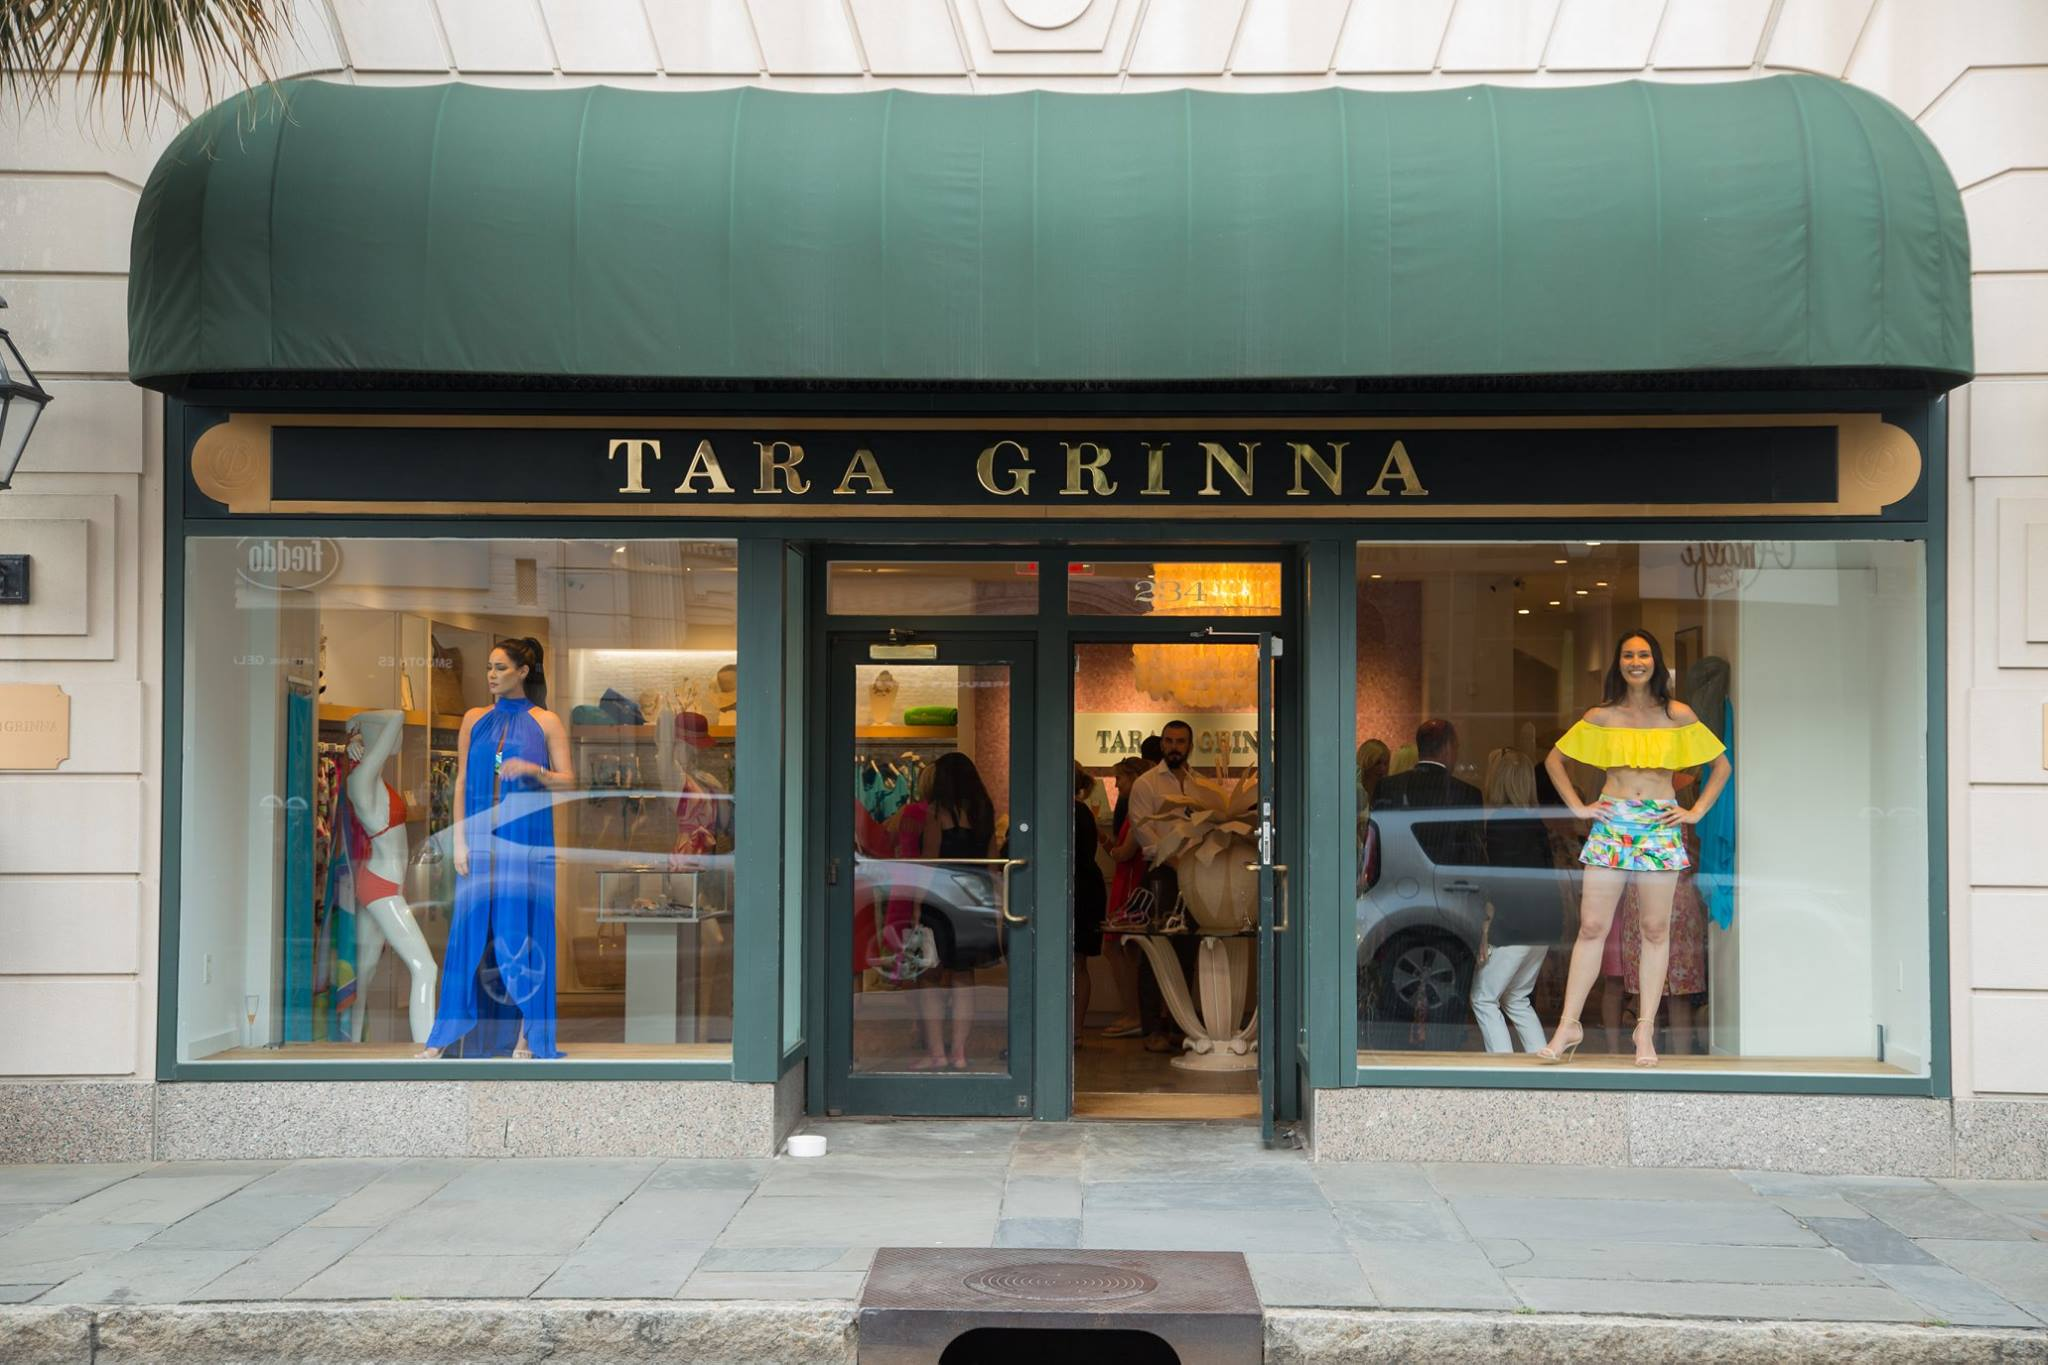 Apply for your dream job with Tara Grinna